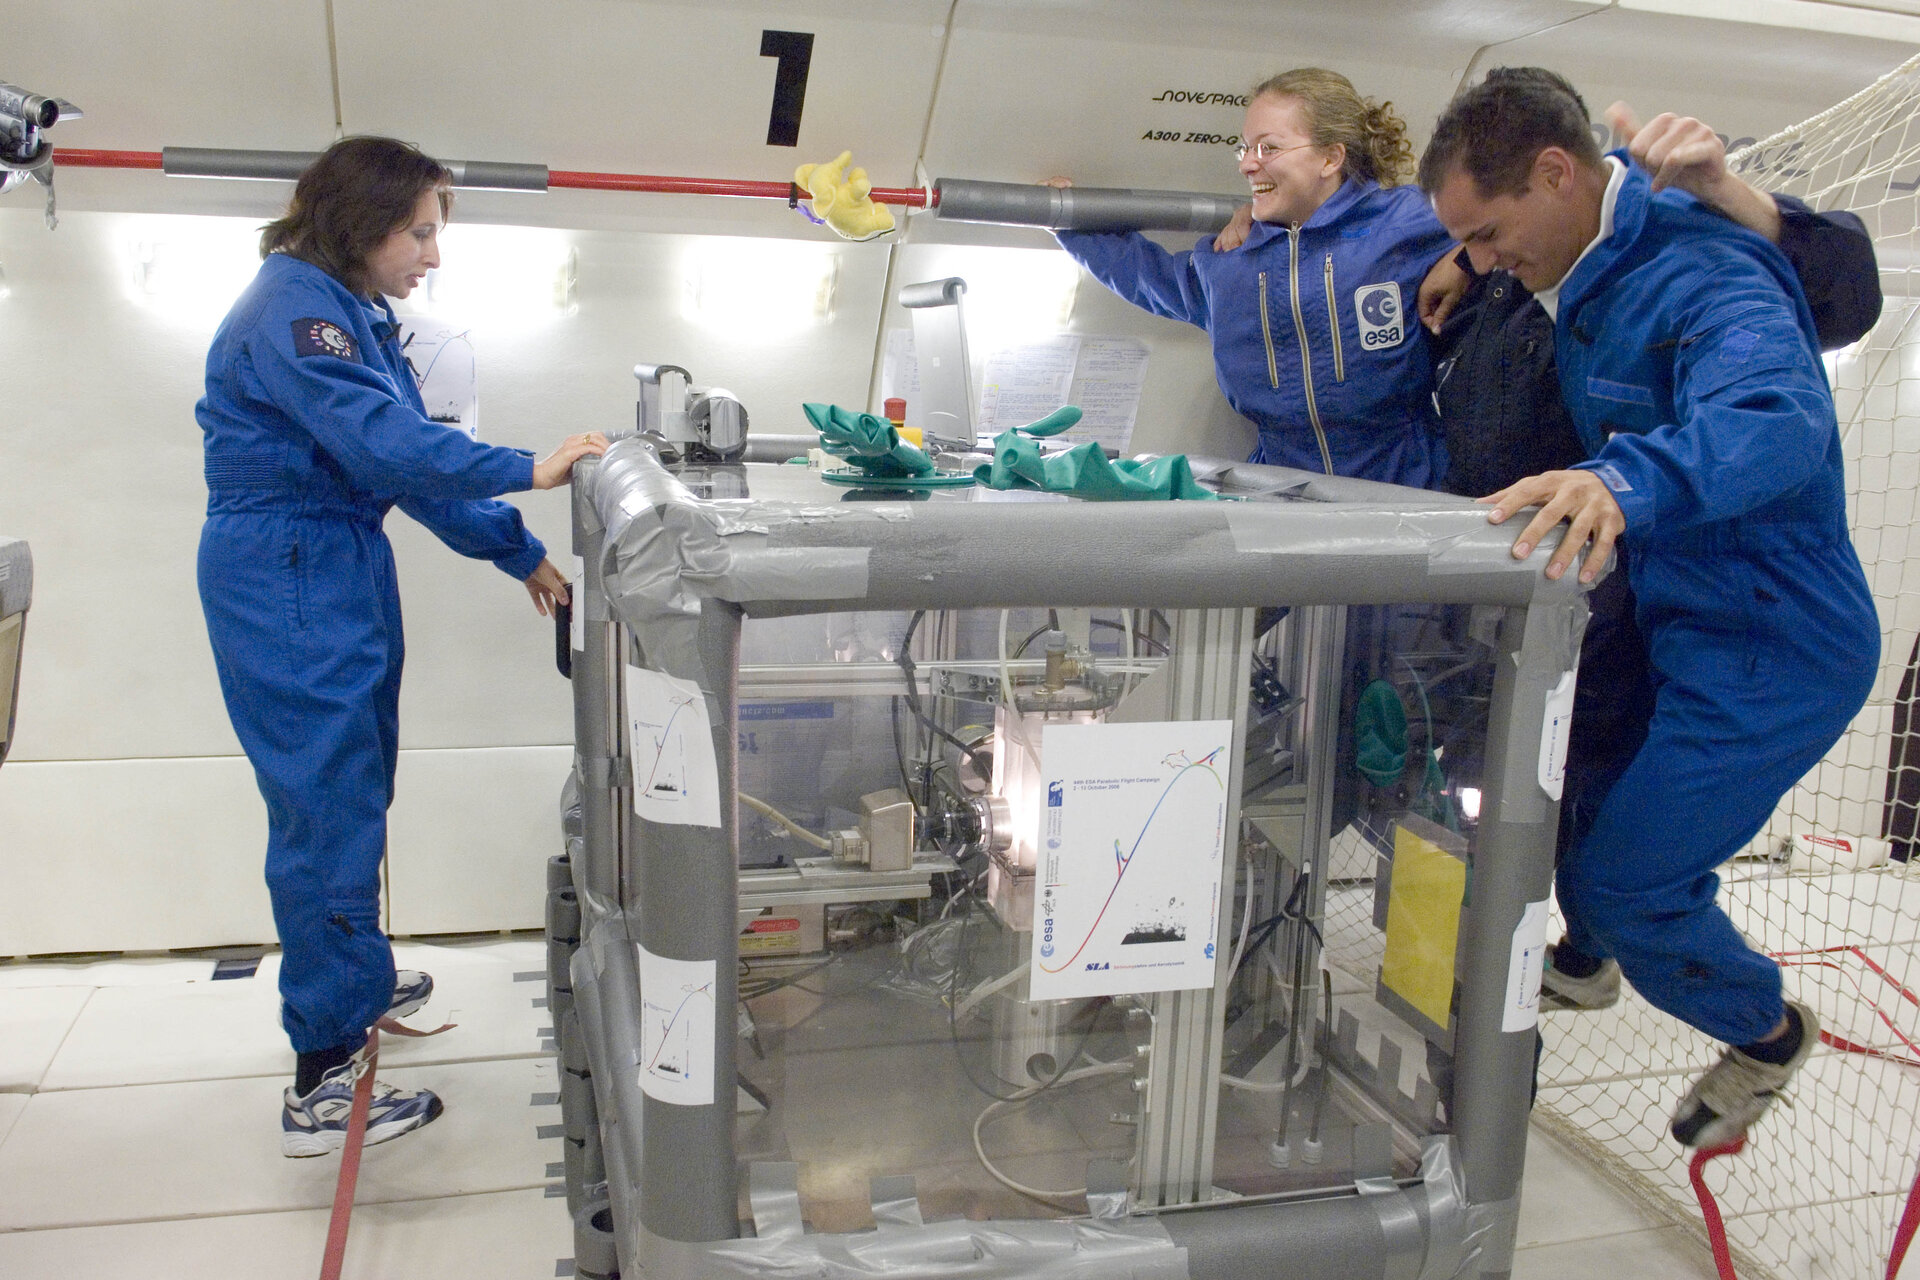 The team from the Technical University of Darmstadt conducting the experiment of spray impact on heated target